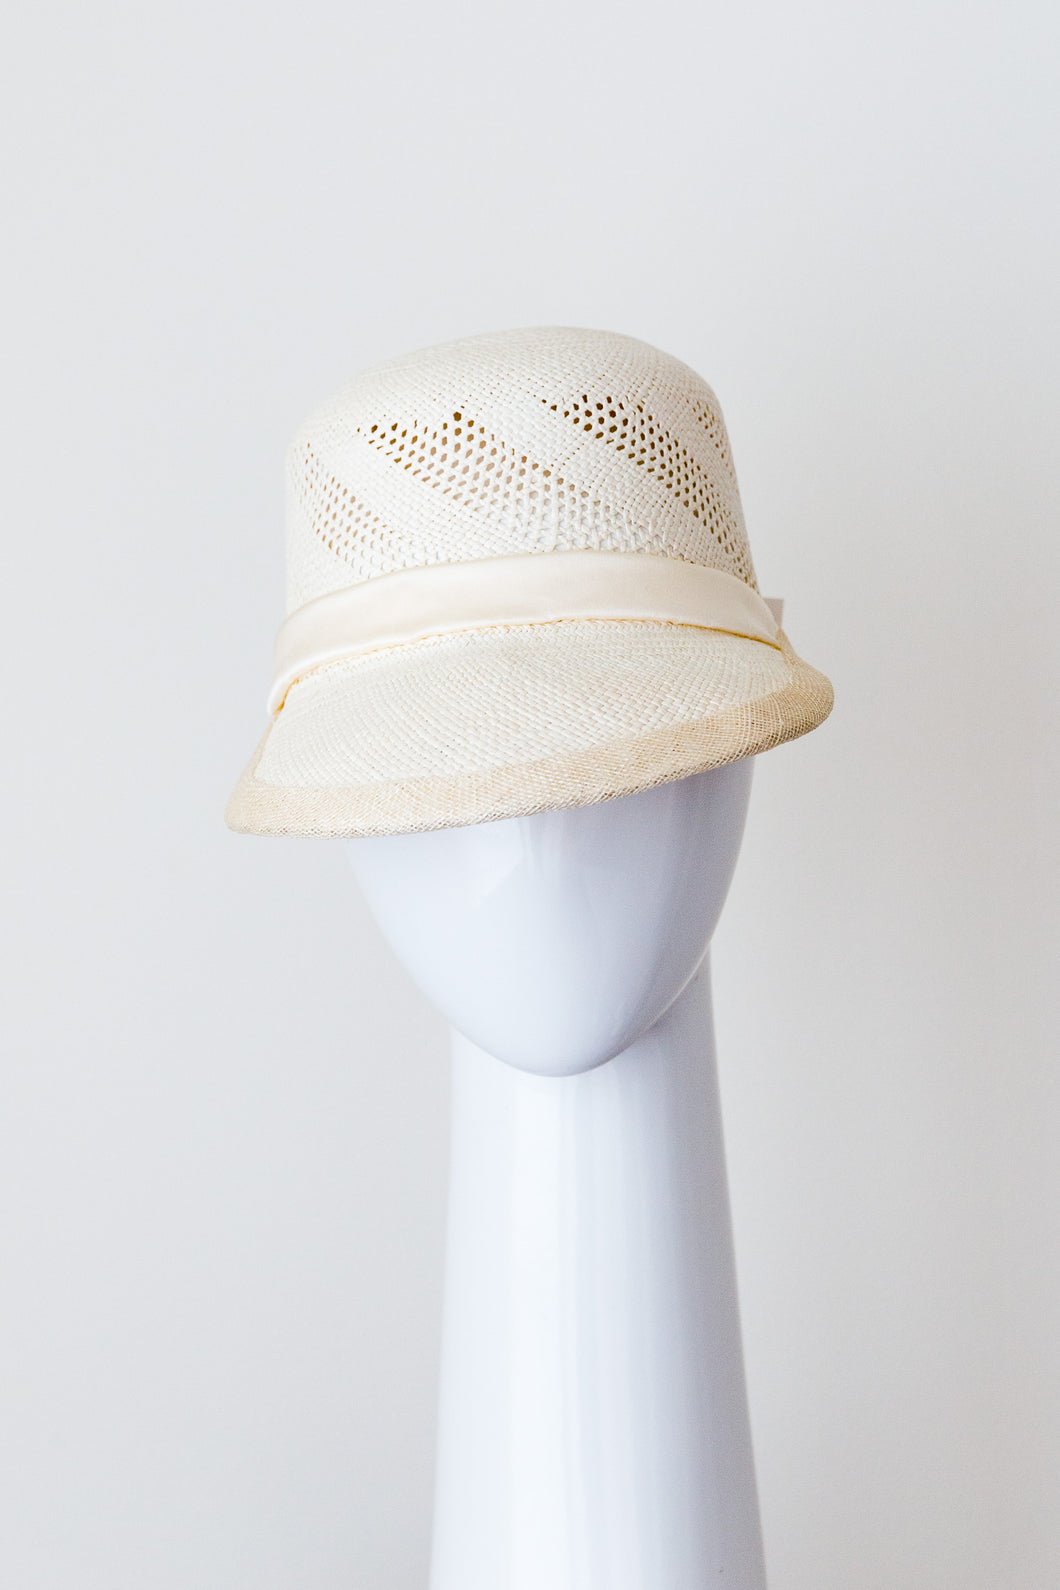 Panama straw cap with open weave  by Felicity Northeast Millinery